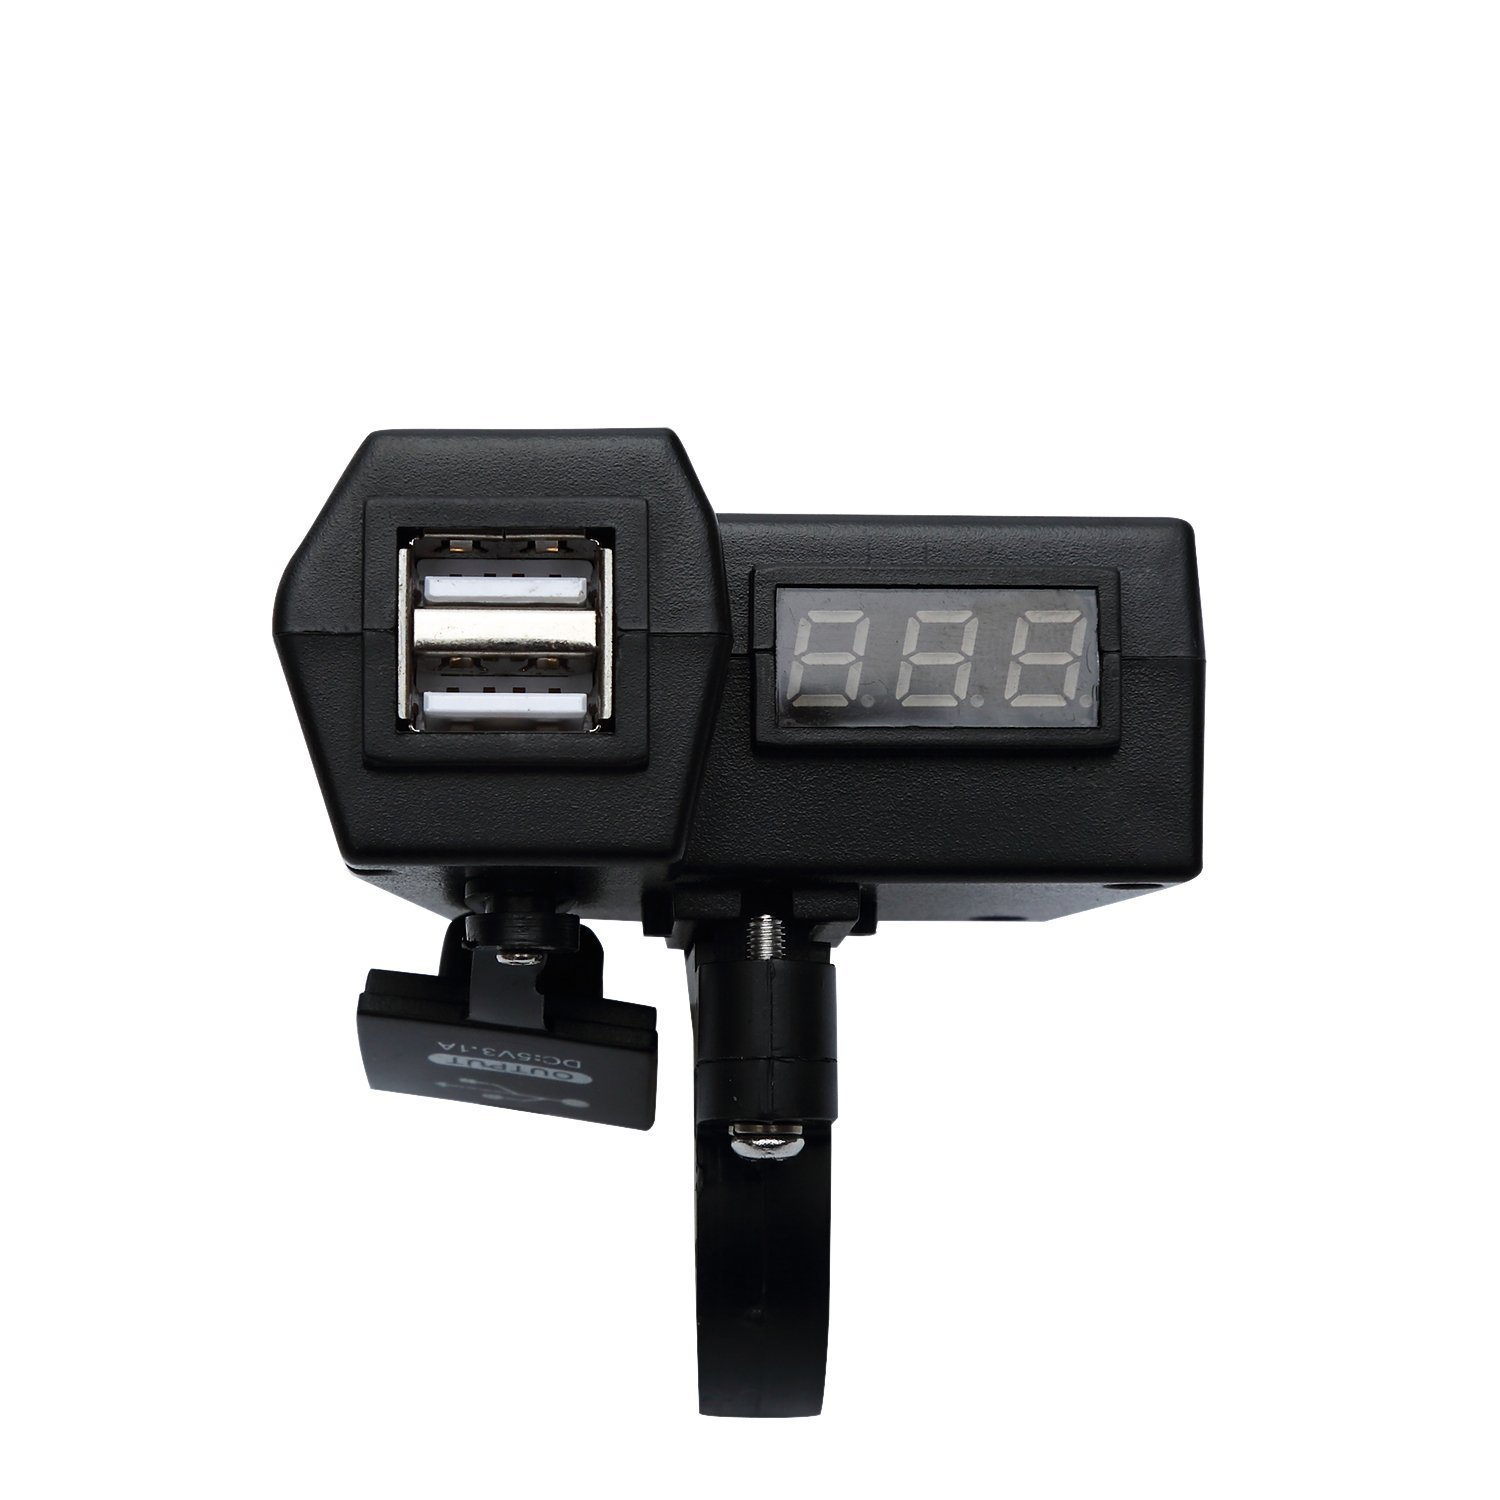 Ocamo Motorcycle USB Phone Charger Voltmeter 3 in 1 with On/Off Switch Dual Power Port